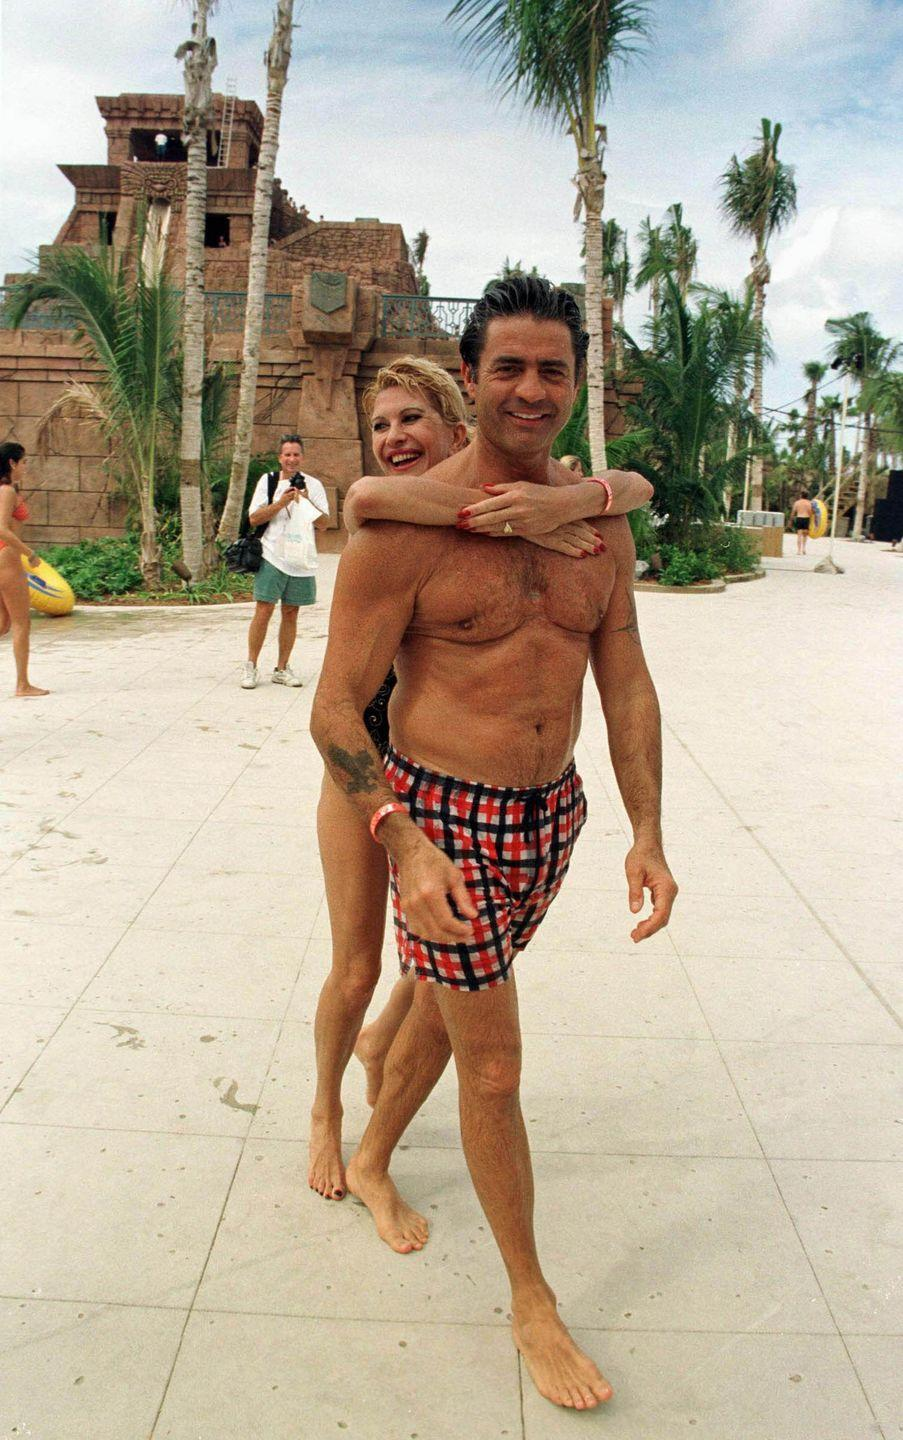 <p>Ivana Trump and Roffredo Gaetani vacationing at Paradise Island, Bahamas. </p><p>Other celebrity visitors this year: Cindy Crawford, Yasmine Bleet.</p>